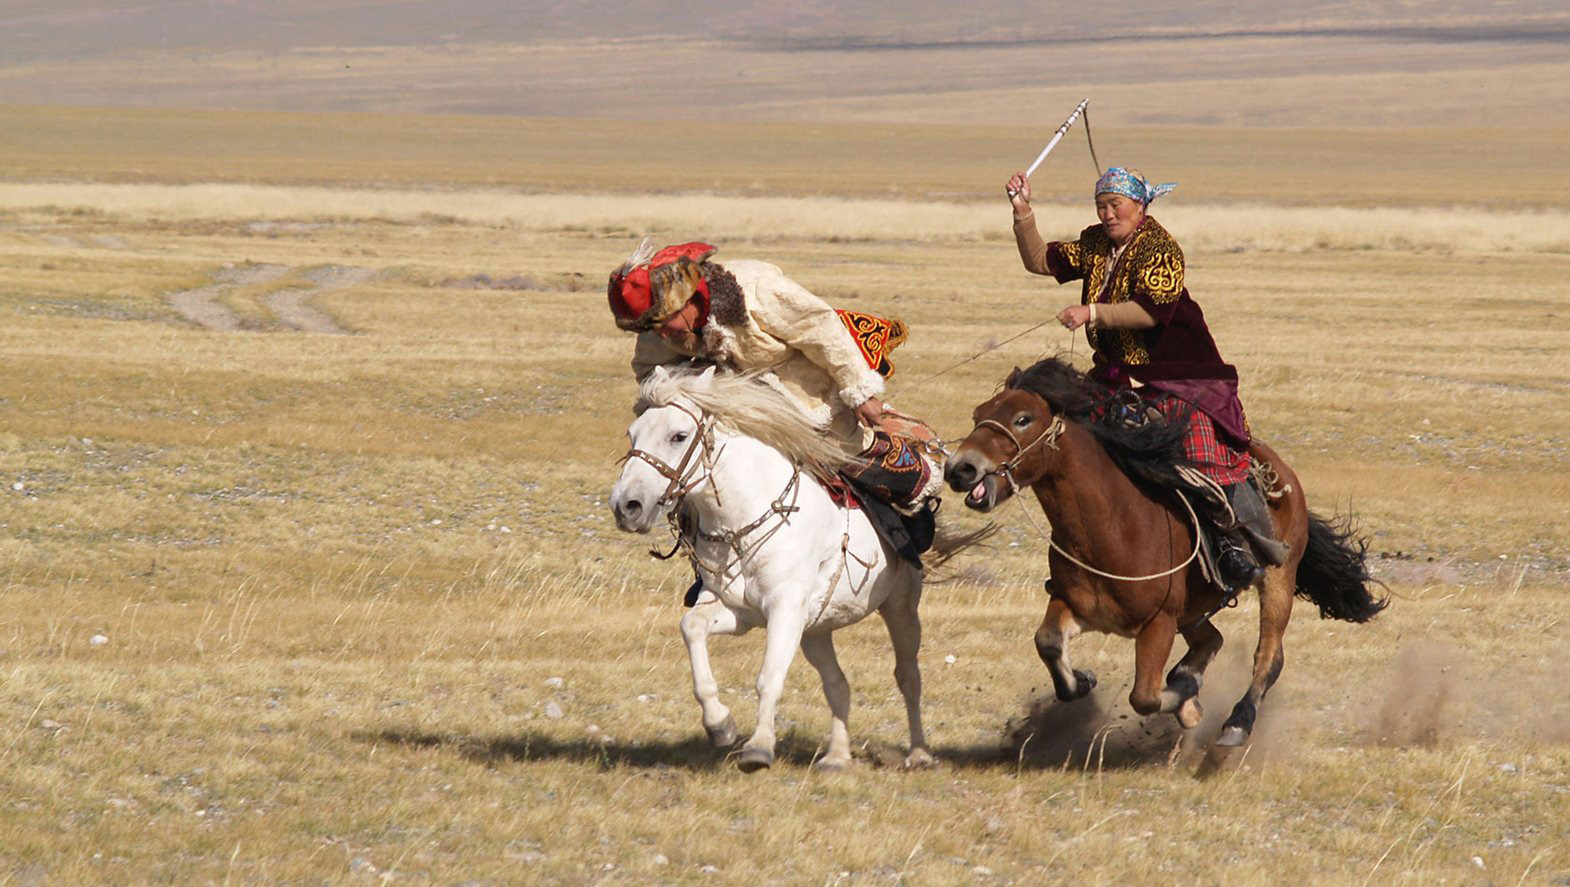 CATCHING A HUSBAND IN MONGOLIA